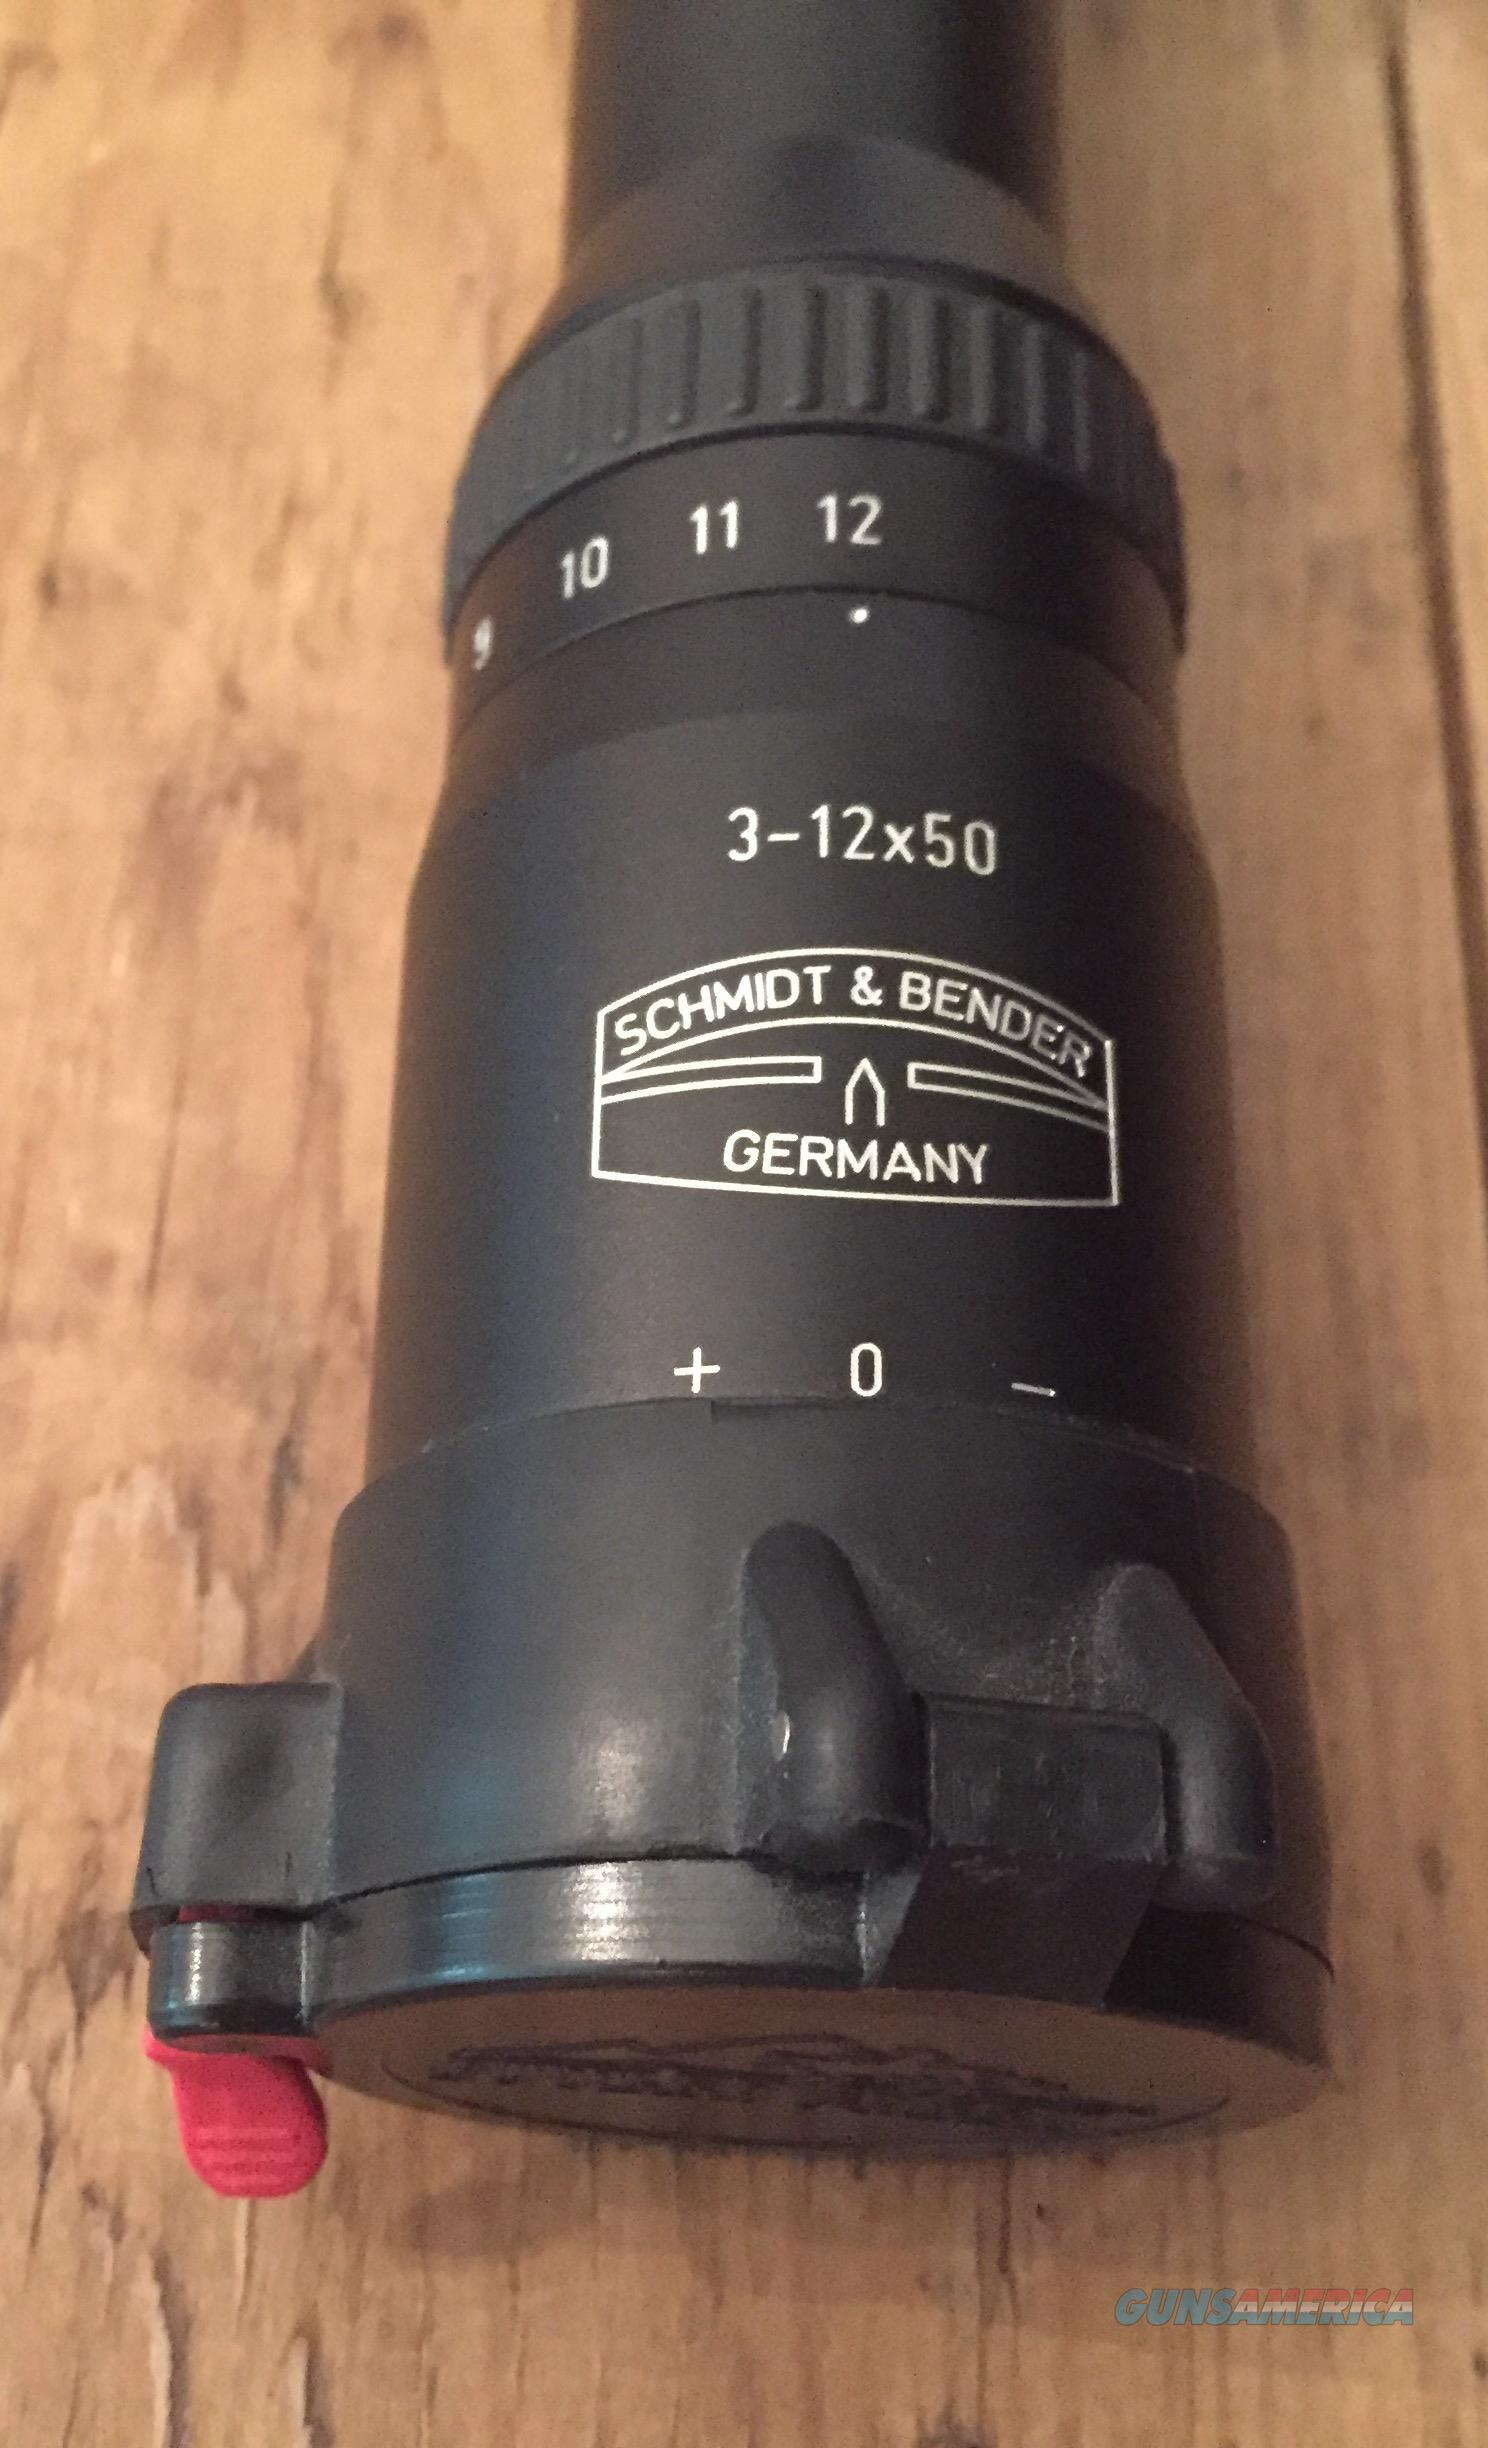 Schmidt & Bender Klassik 3-12 x 50  Non-Guns > Scopes/Mounts/Rings & Optics > Rifle Scopes > Variable Focal Length